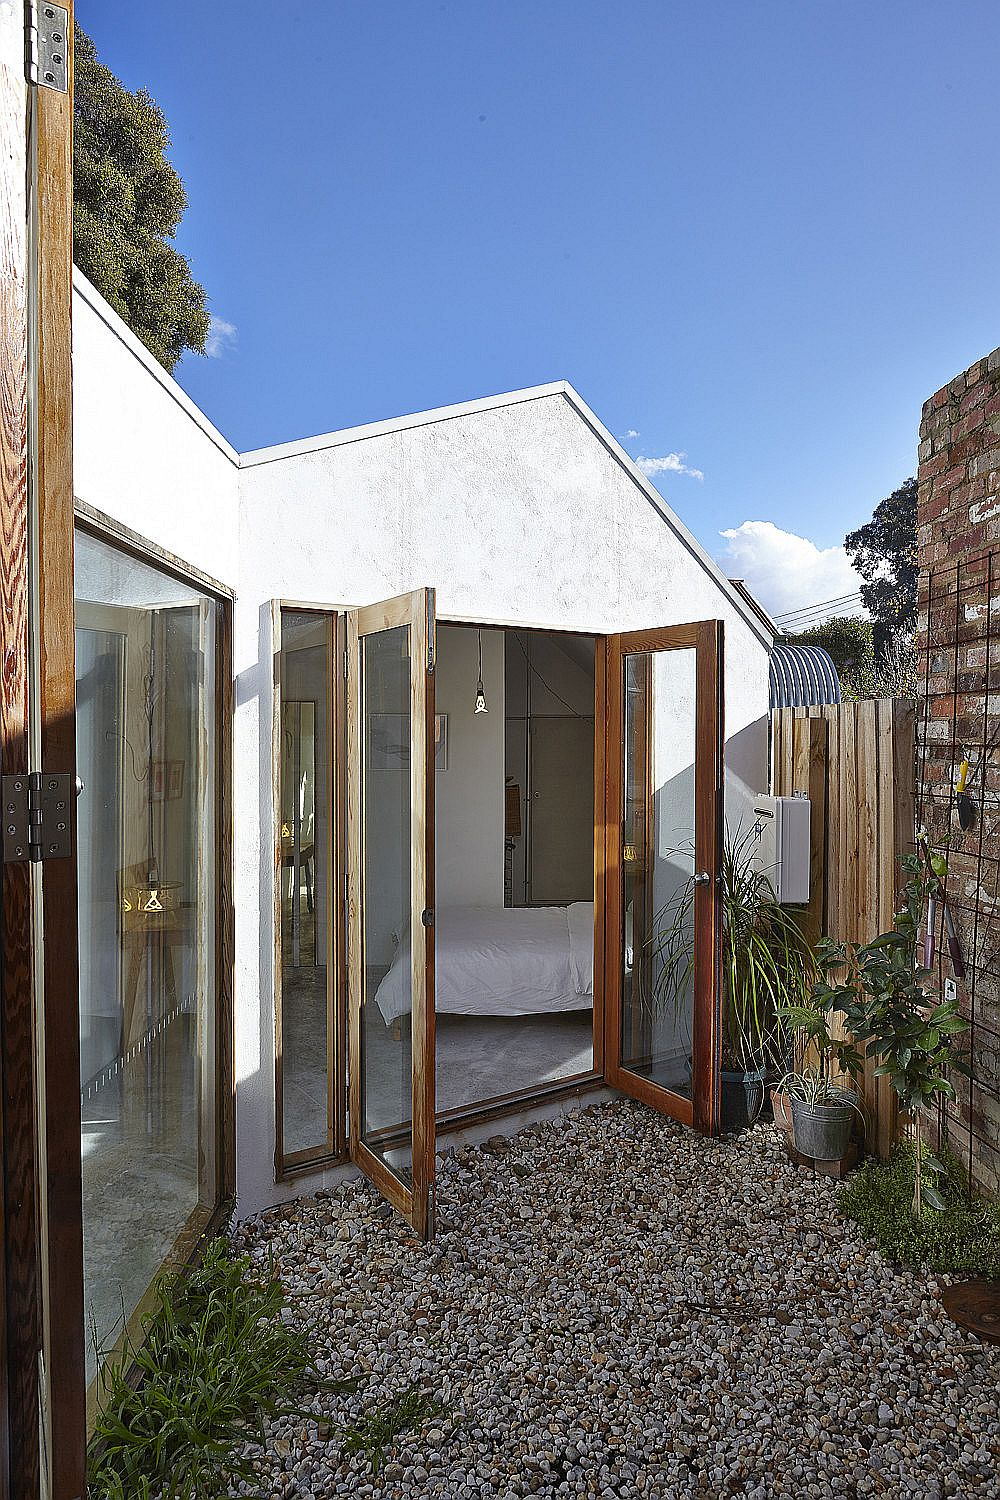 New-floor-plan-of-the-house-opens-it-to-the-small-courtyards-outside-29173